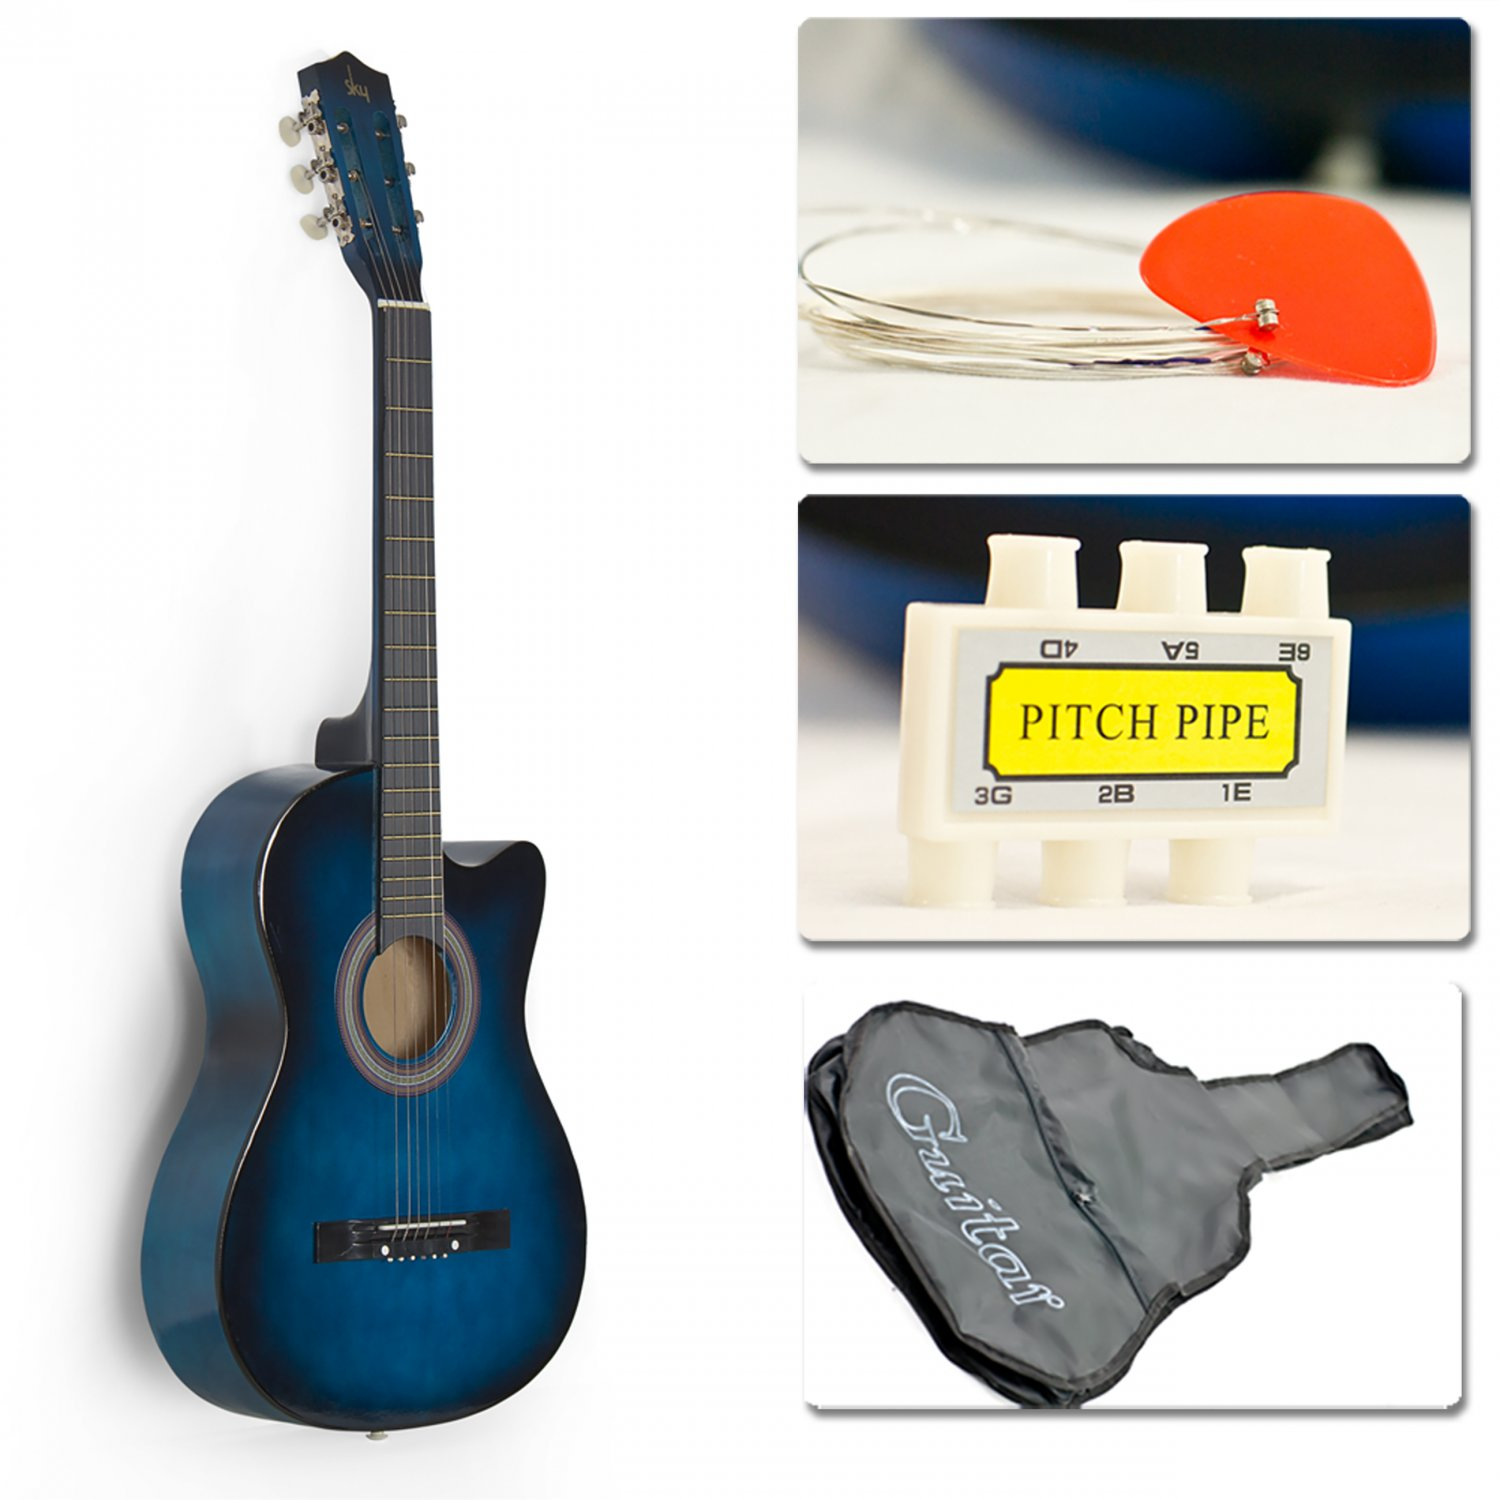 Blue Acoustic Guitar Cutaway Design w/ Guitar Case, Strap, Tuner and Pick